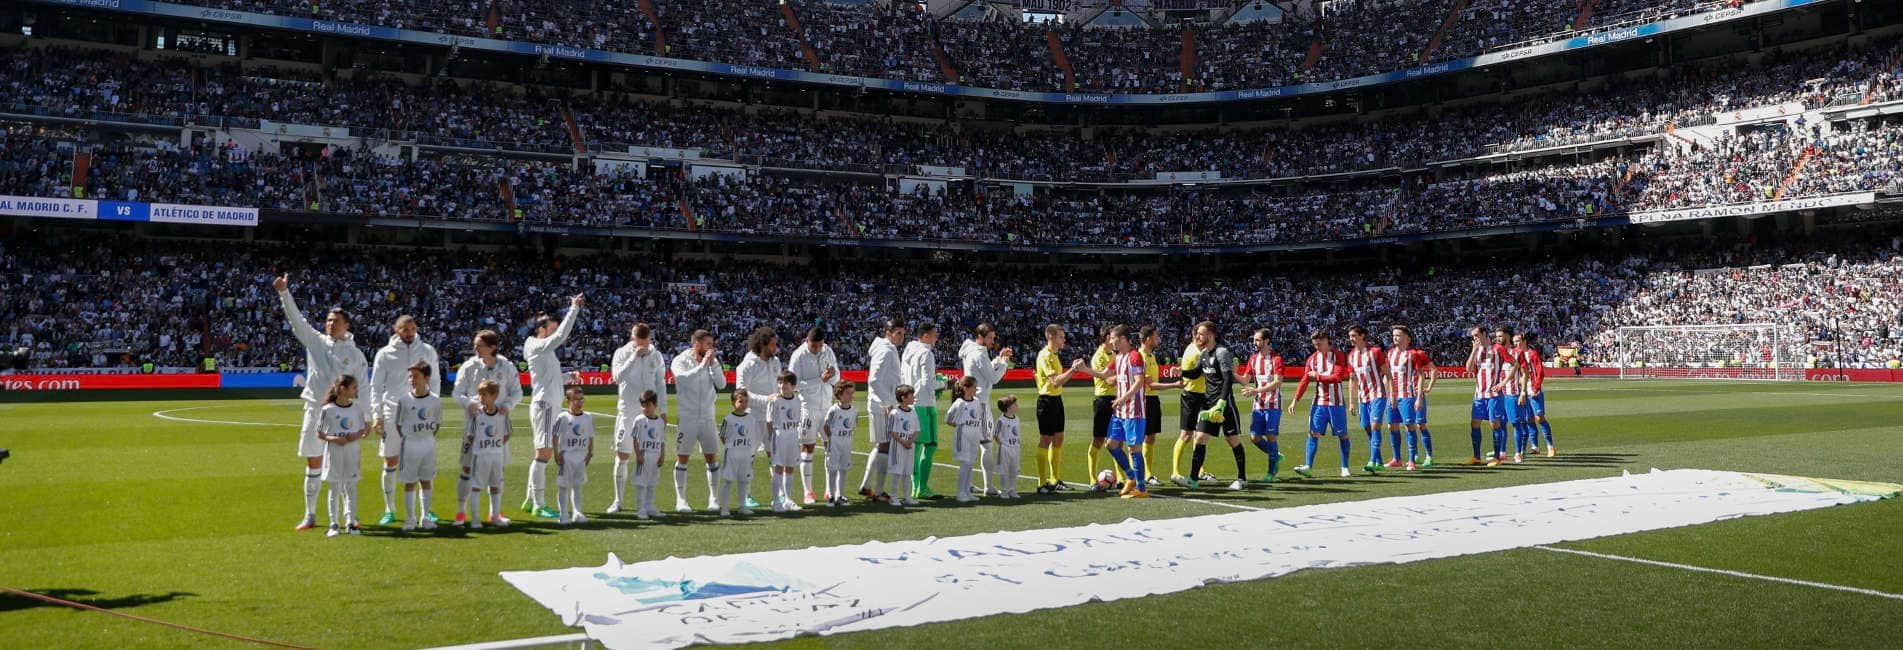 Real Madrid - Atlético de Madrid. Estadio Santiago Bernabéu 8 abril 2017